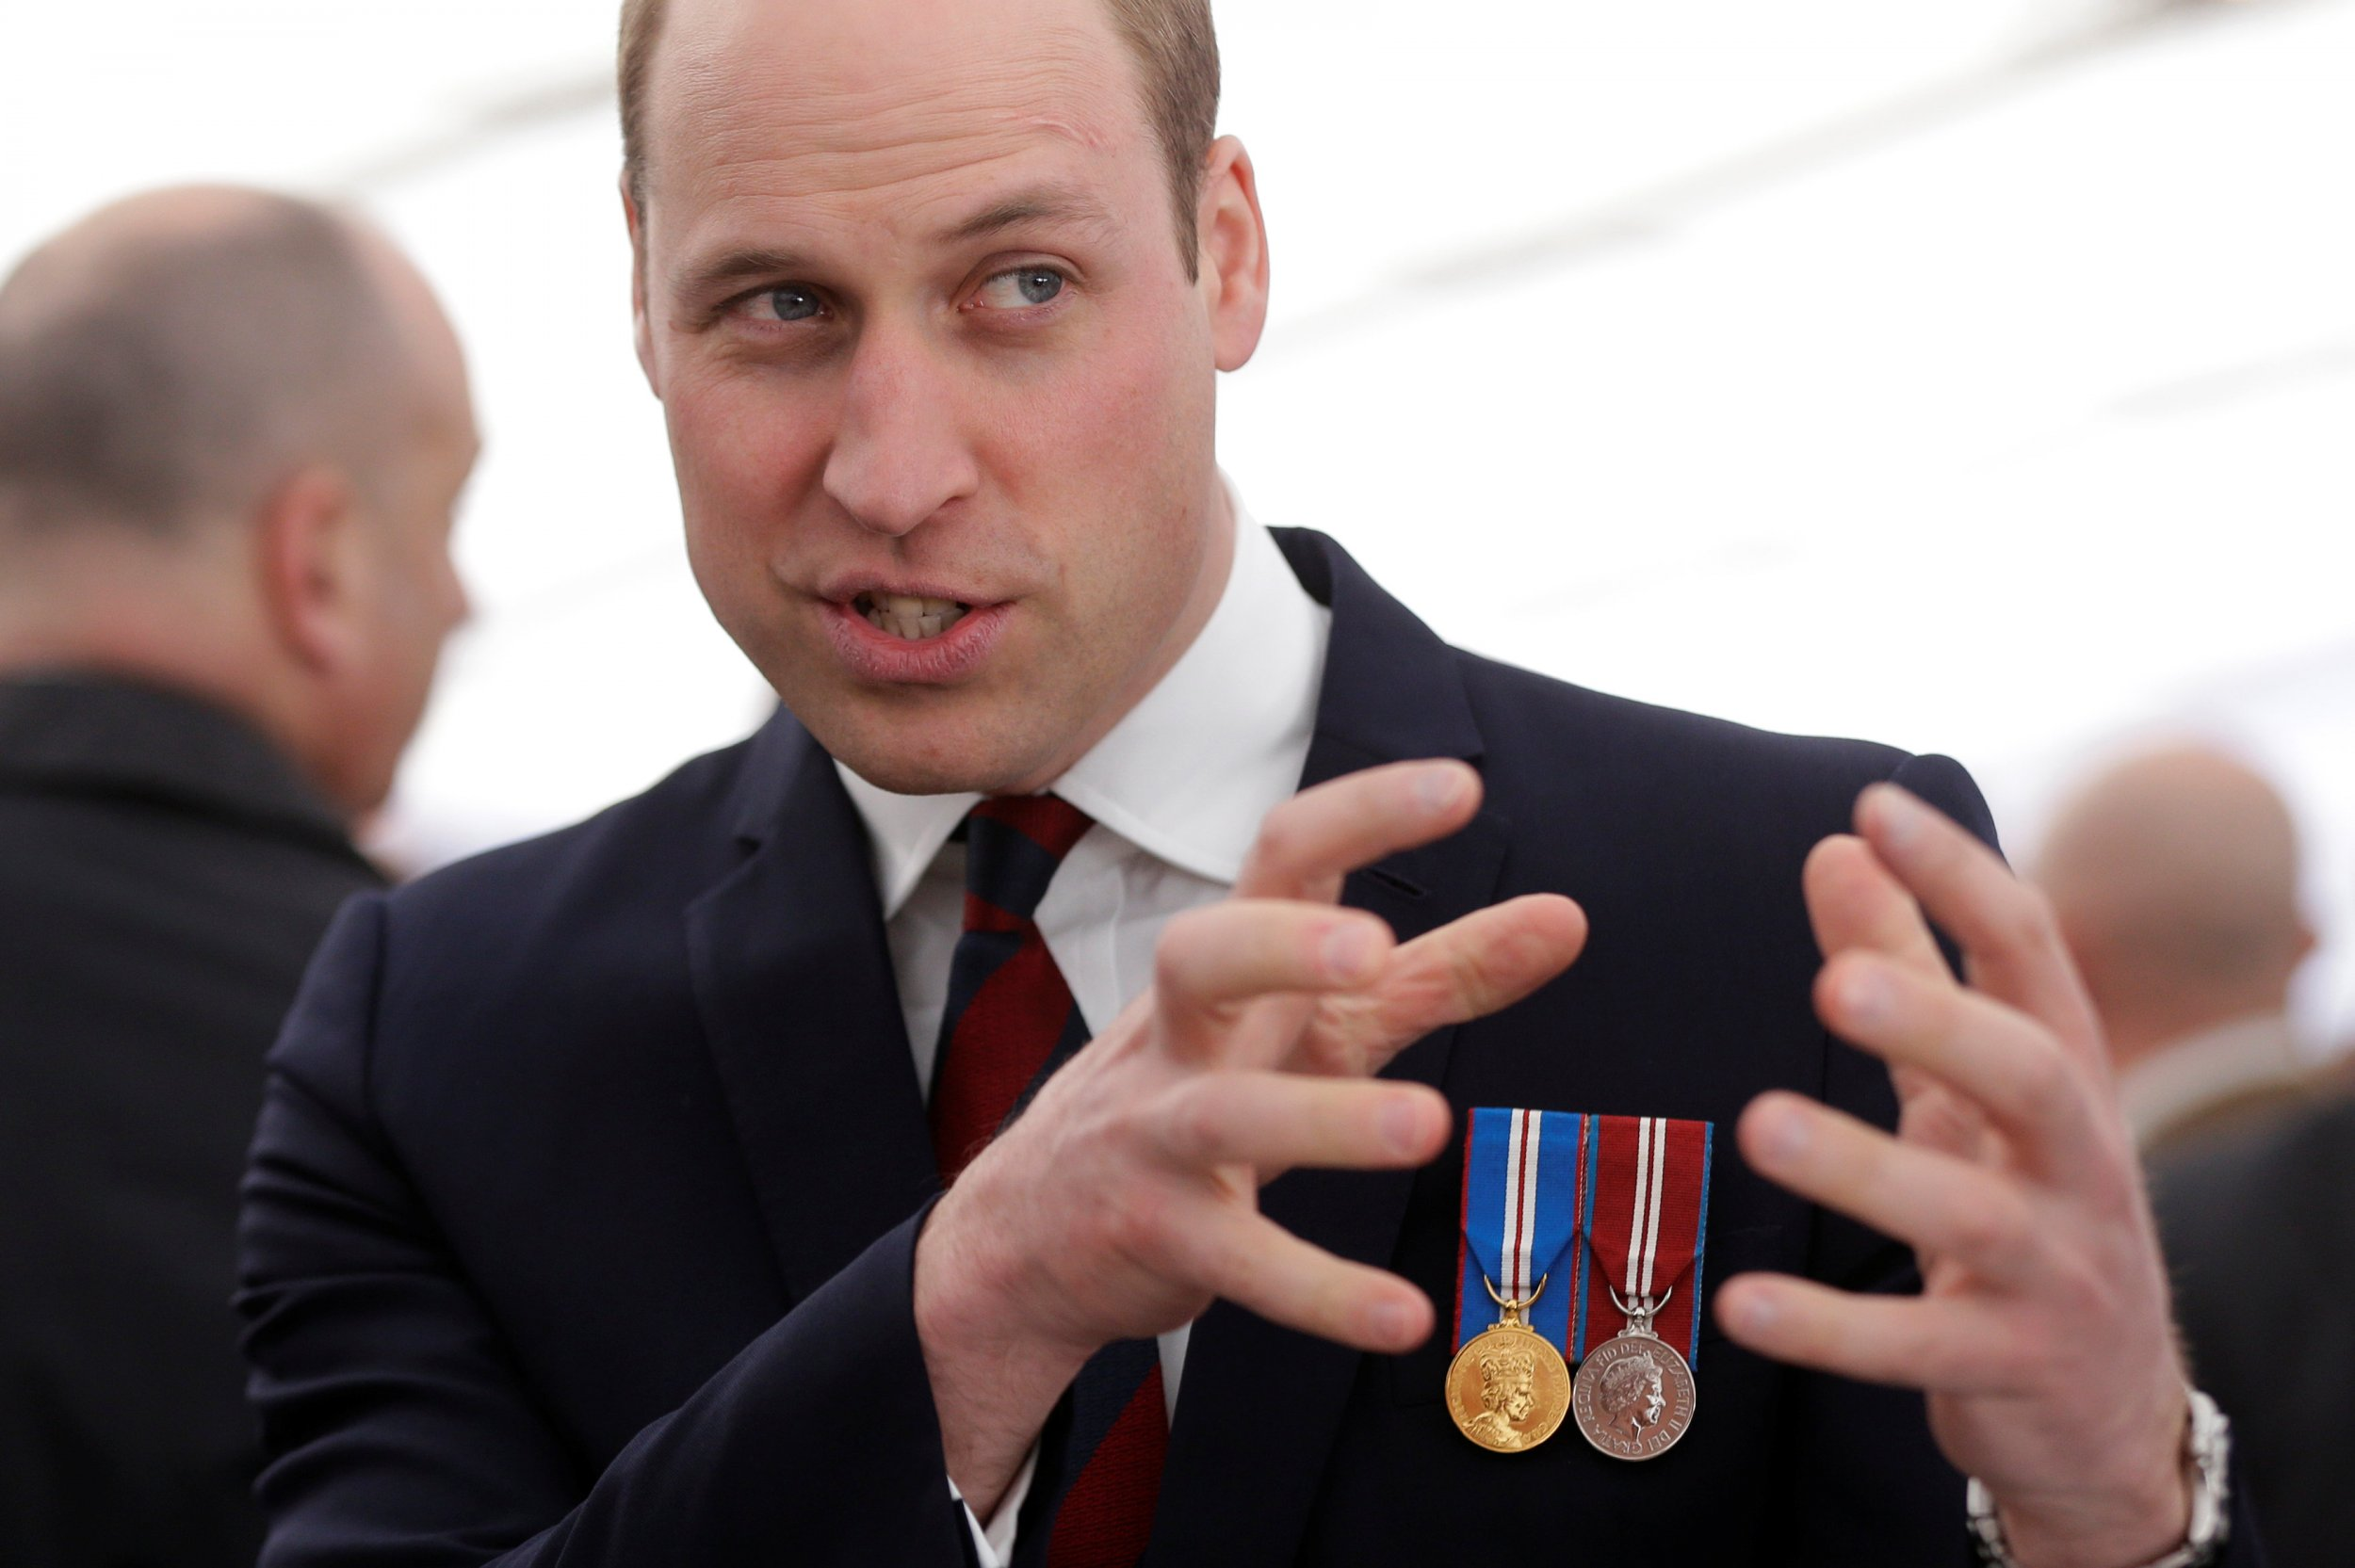 Will Prince William Be King? 'Work-Shy' Allegations Prompt